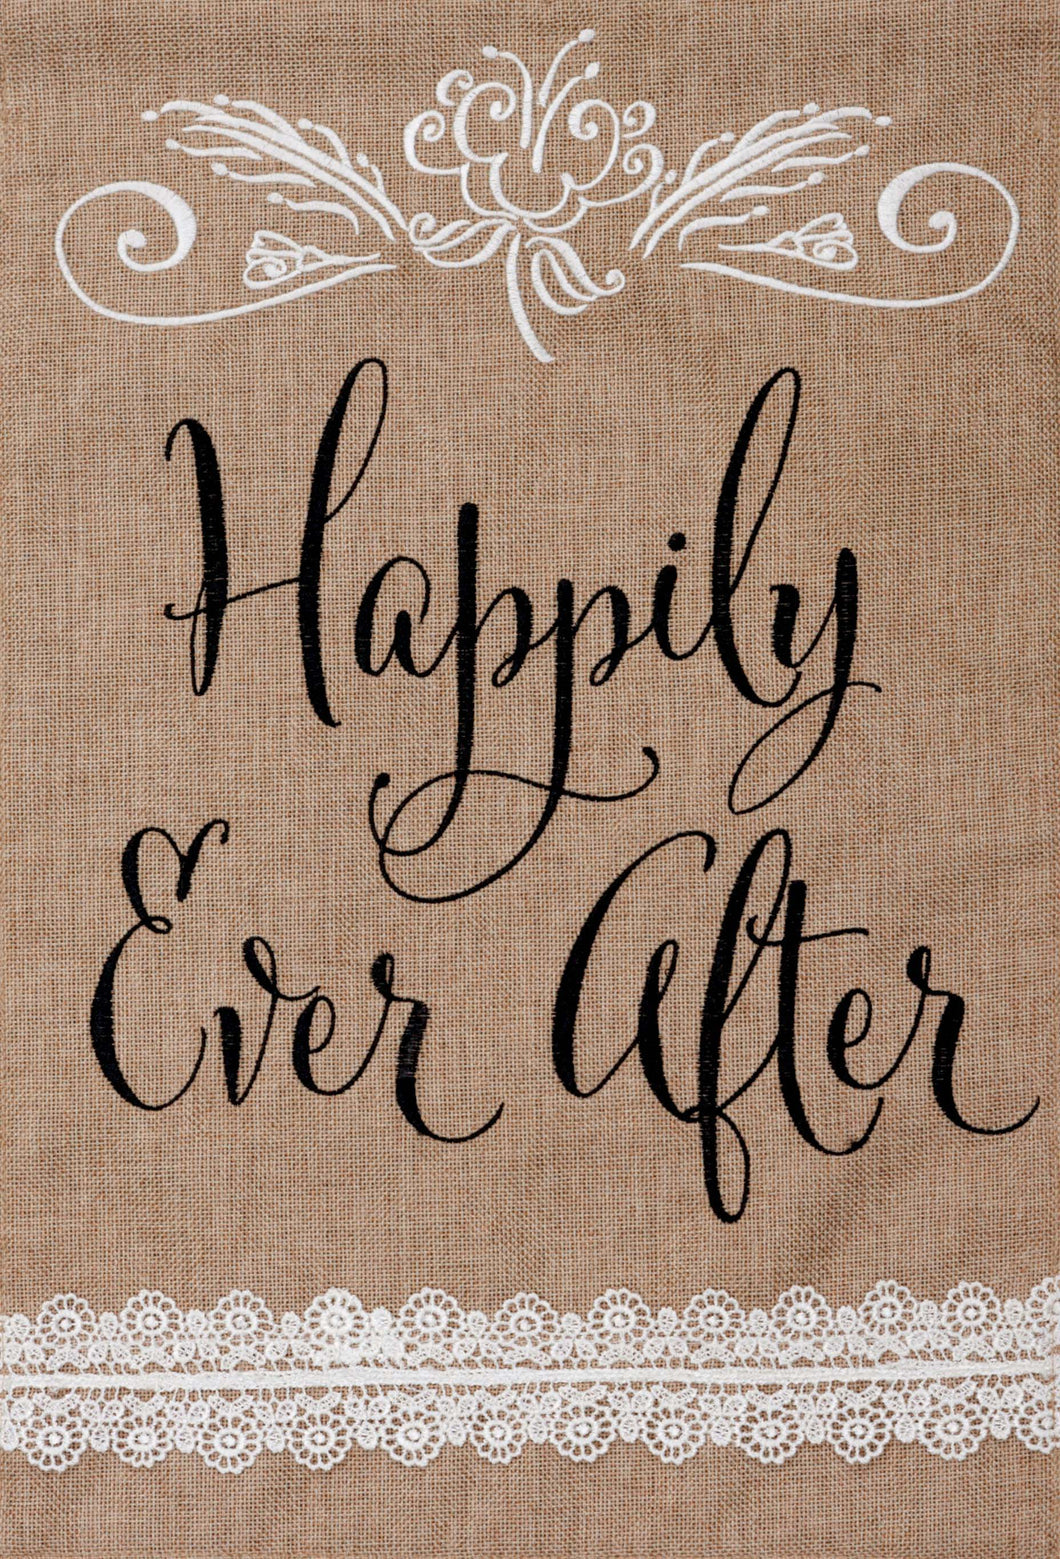 CUSTOM DECOR HAPPILY EVER AFTER GARDEN FLAG